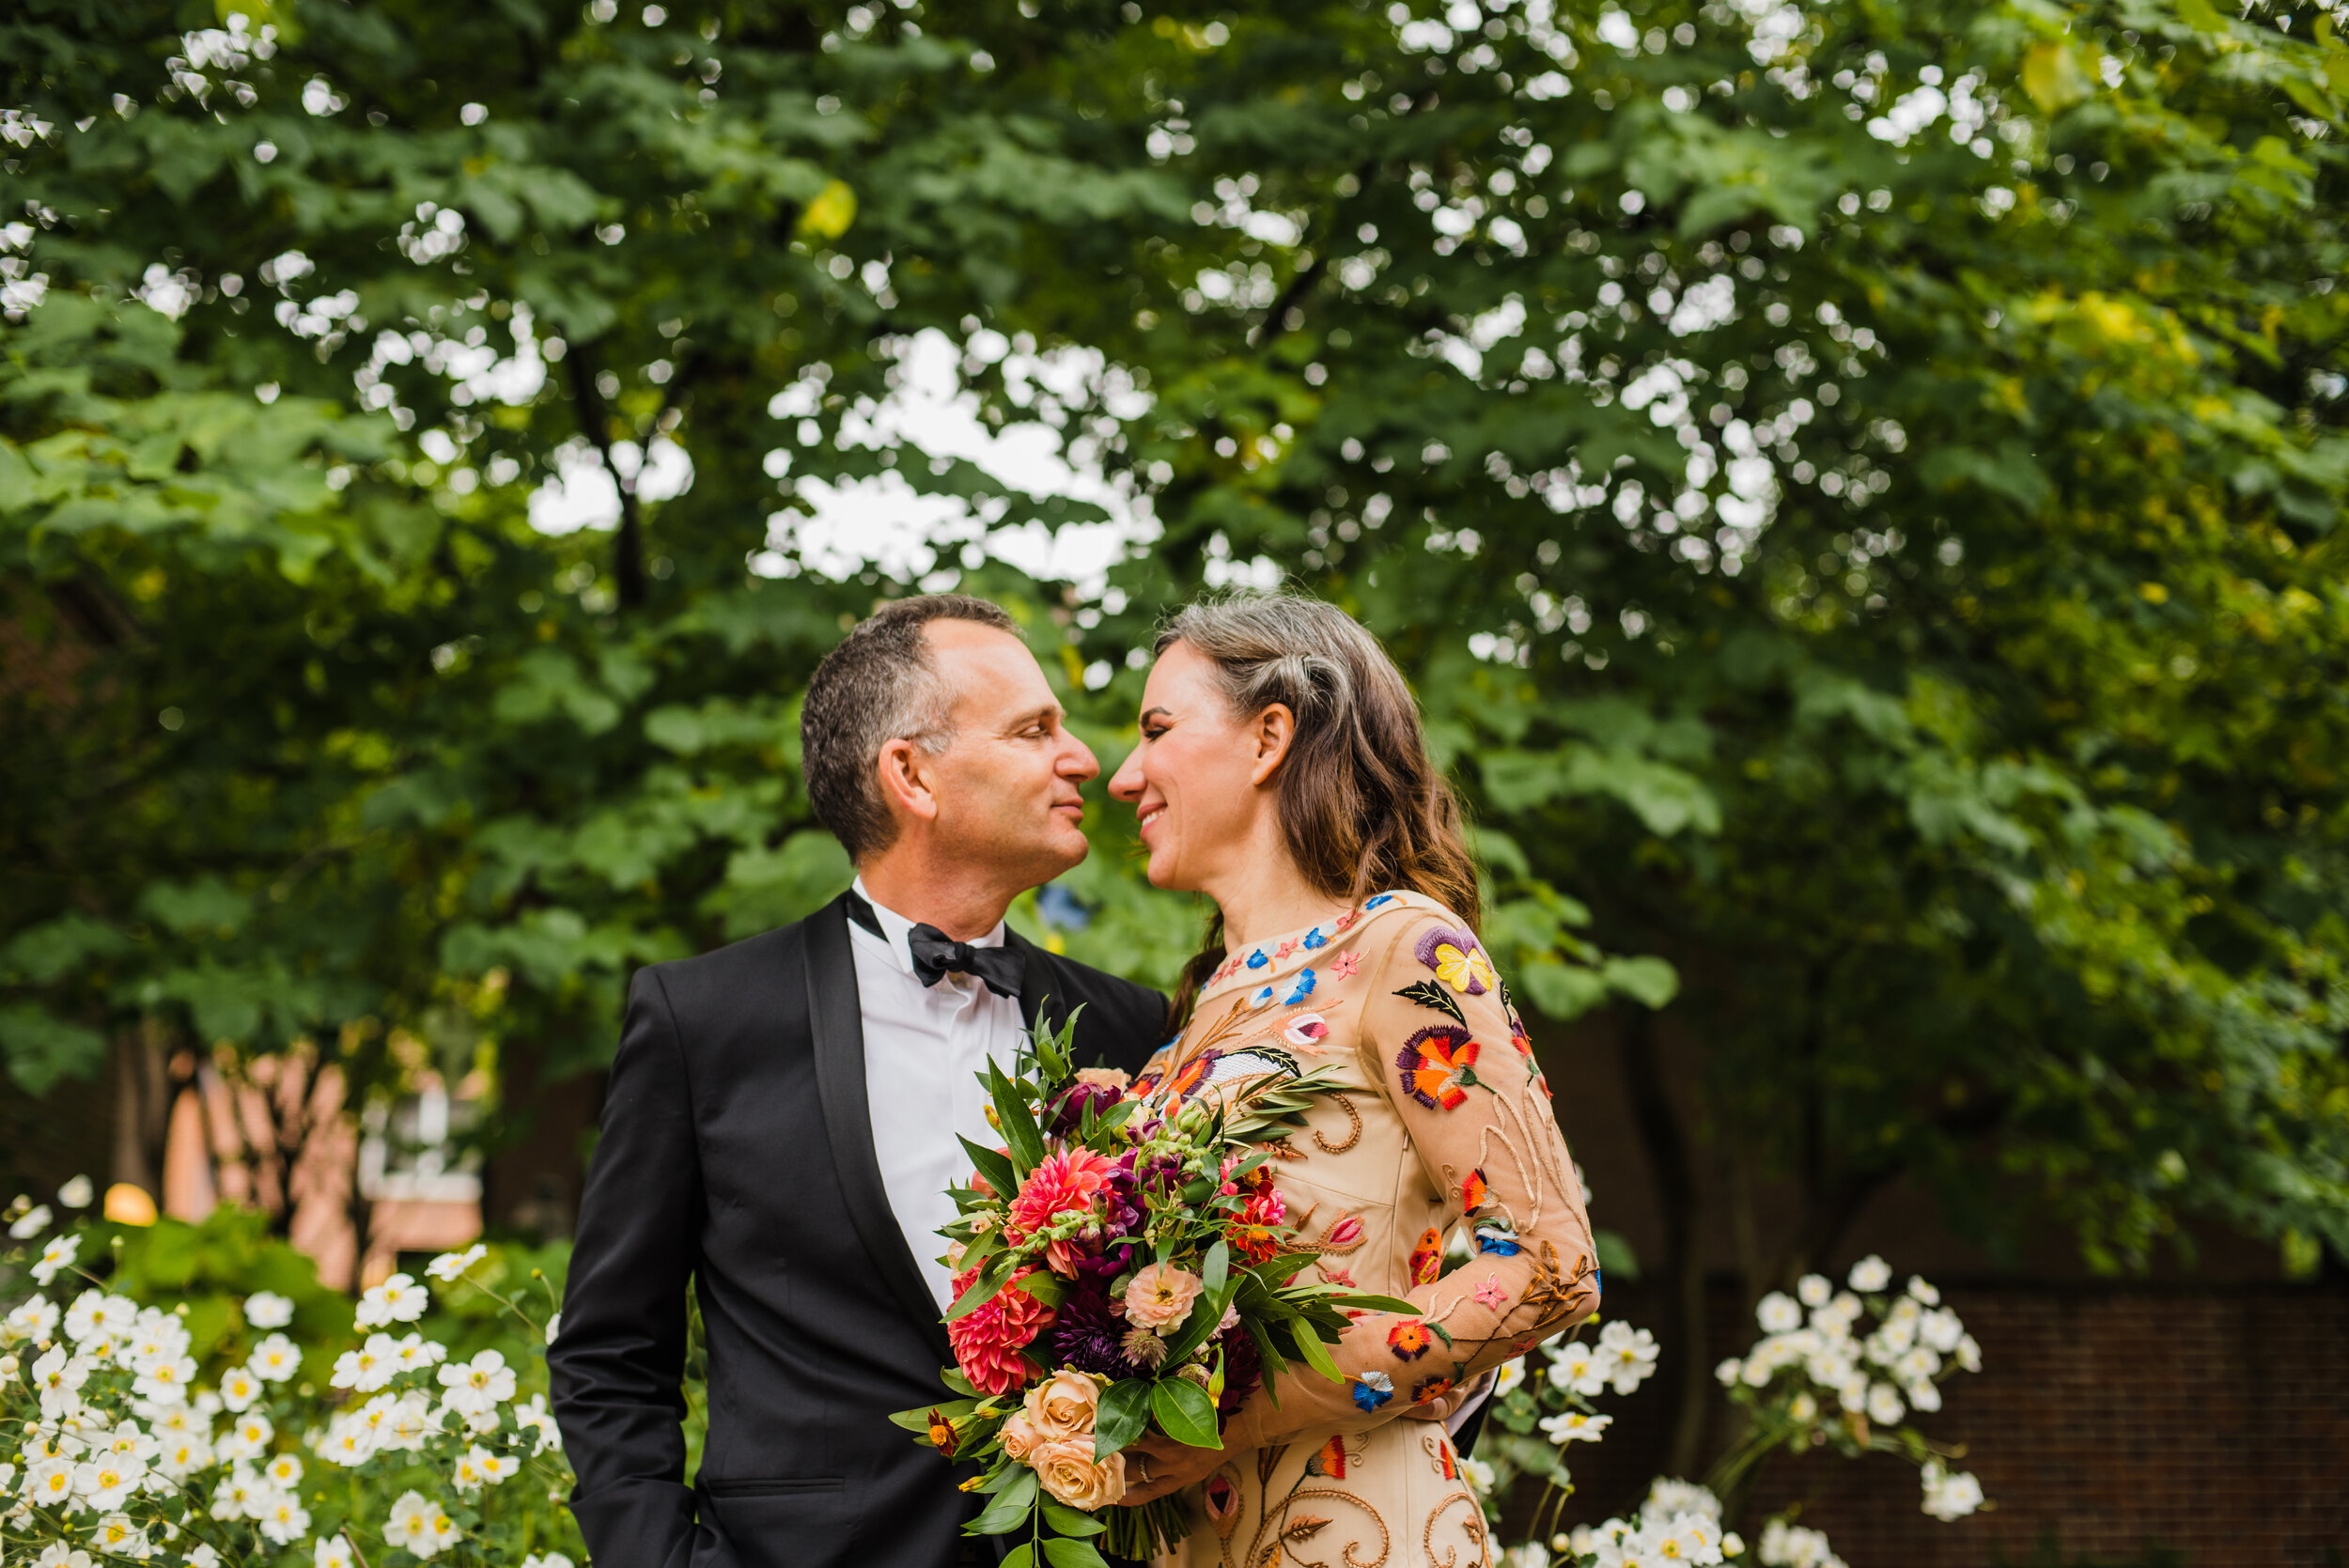 Wedding couple with the bride in a colorful dress surrounded by greenery.